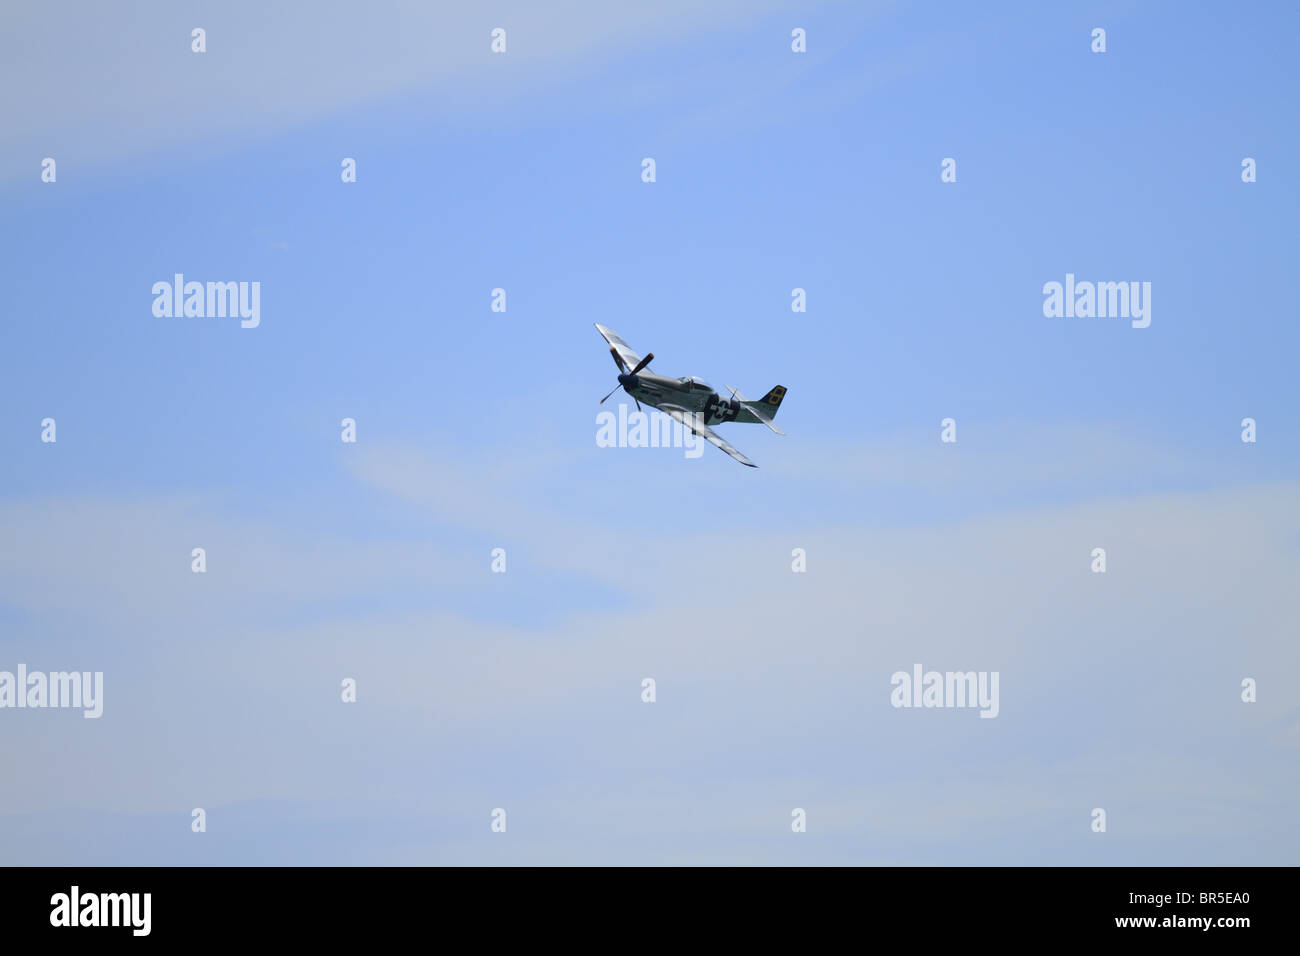 A P-51 Mustang flies over at Eastbourne Air Show, East Sussex, England. - Stock Image